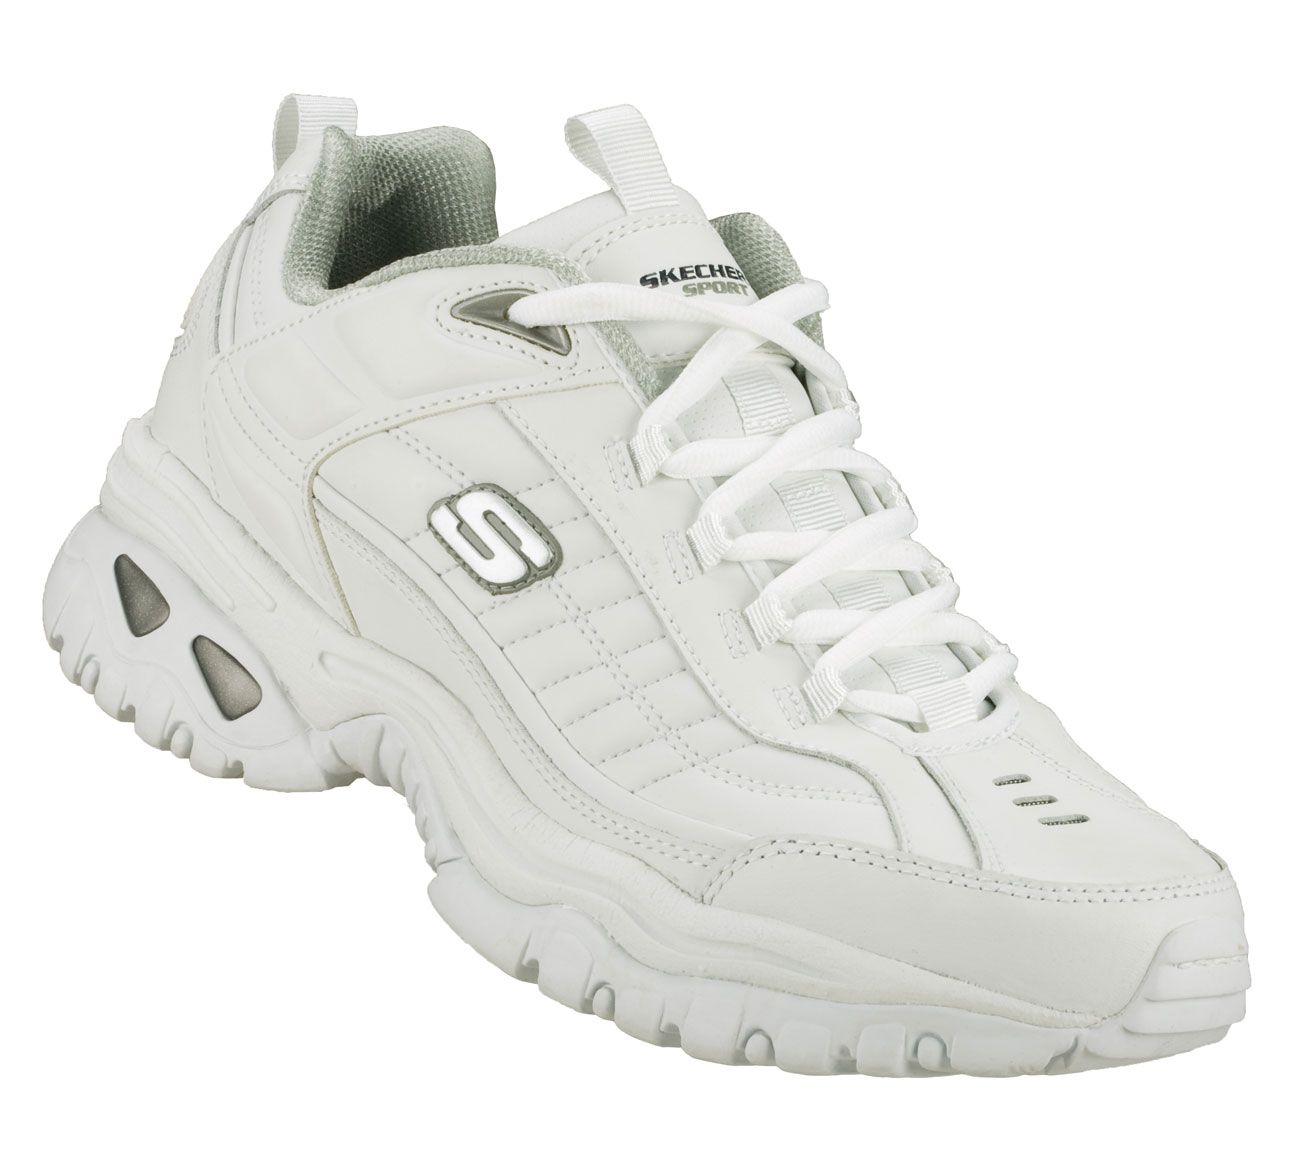 For the Guys: Skechers Men's Energy - After Burn Training Shoes. Leather  upper in